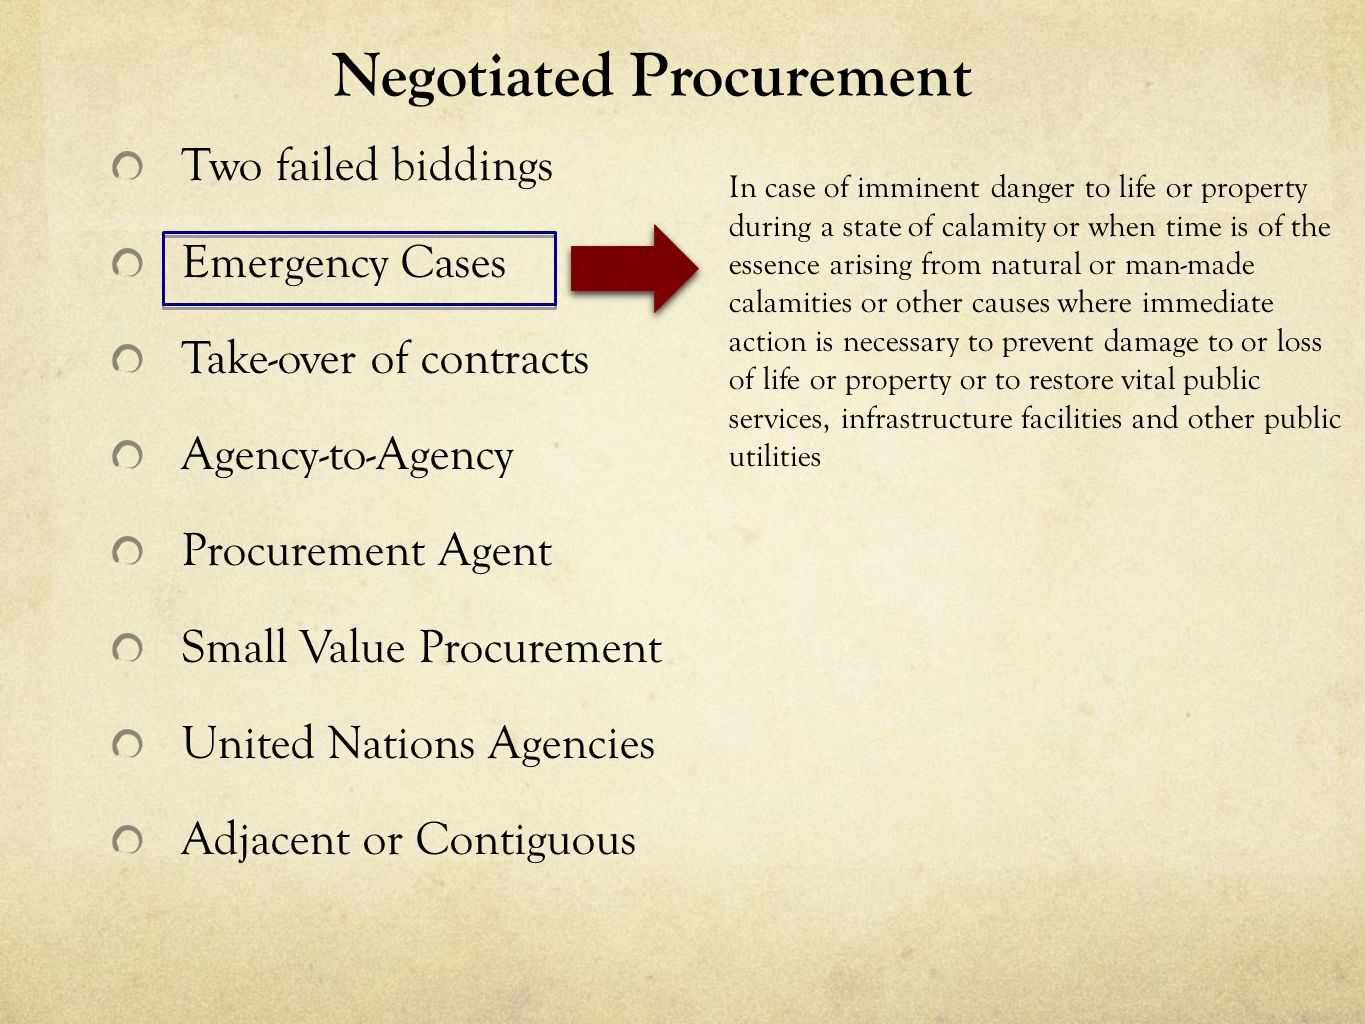 Negotiated Procurement Two failed biddings Emergency Cases Take-over of contracts Agency-to-Agency Procurement Agent Small Value Procurement United Nations Agencies Adjacent or Contiguous In case of imminent danger to life or property during a state of calamity or when time is of the essence arising from natural or man-made calamities or other causes where immediate action is necessary to prevent damage to or loss of life or property or to restore vital public services, infrastructure facilities and other public utilities